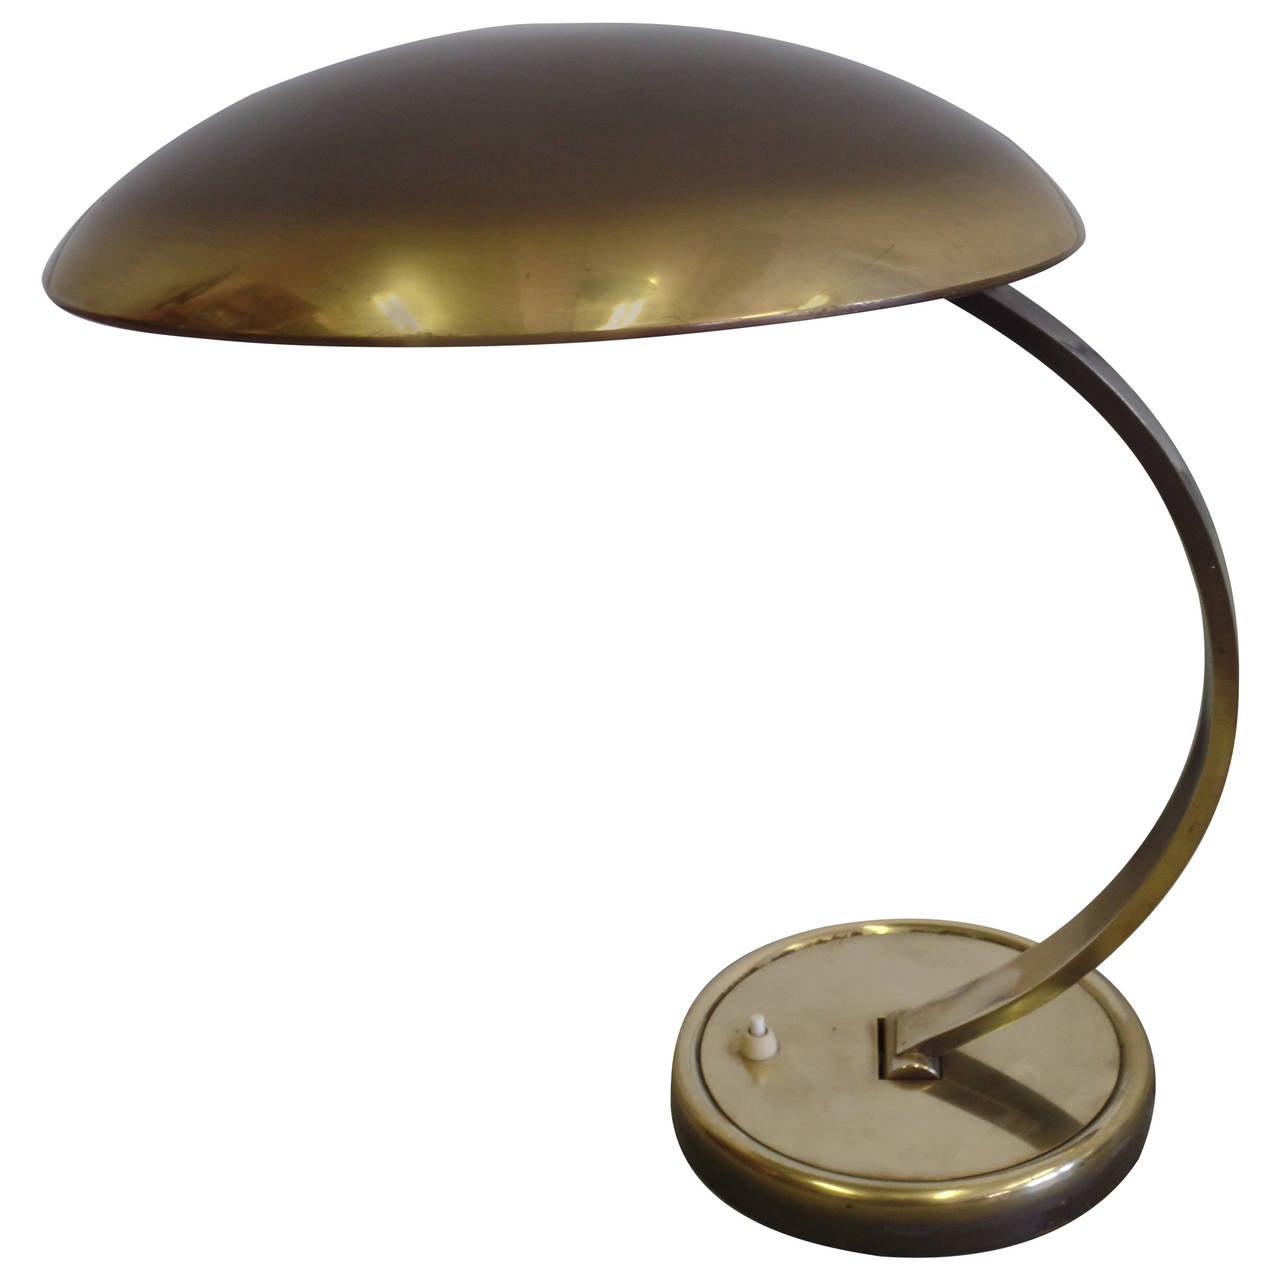 German Mid-Century Modern Solid Brass Articulating 'Bauhaus' Desk Lamp  For Sale